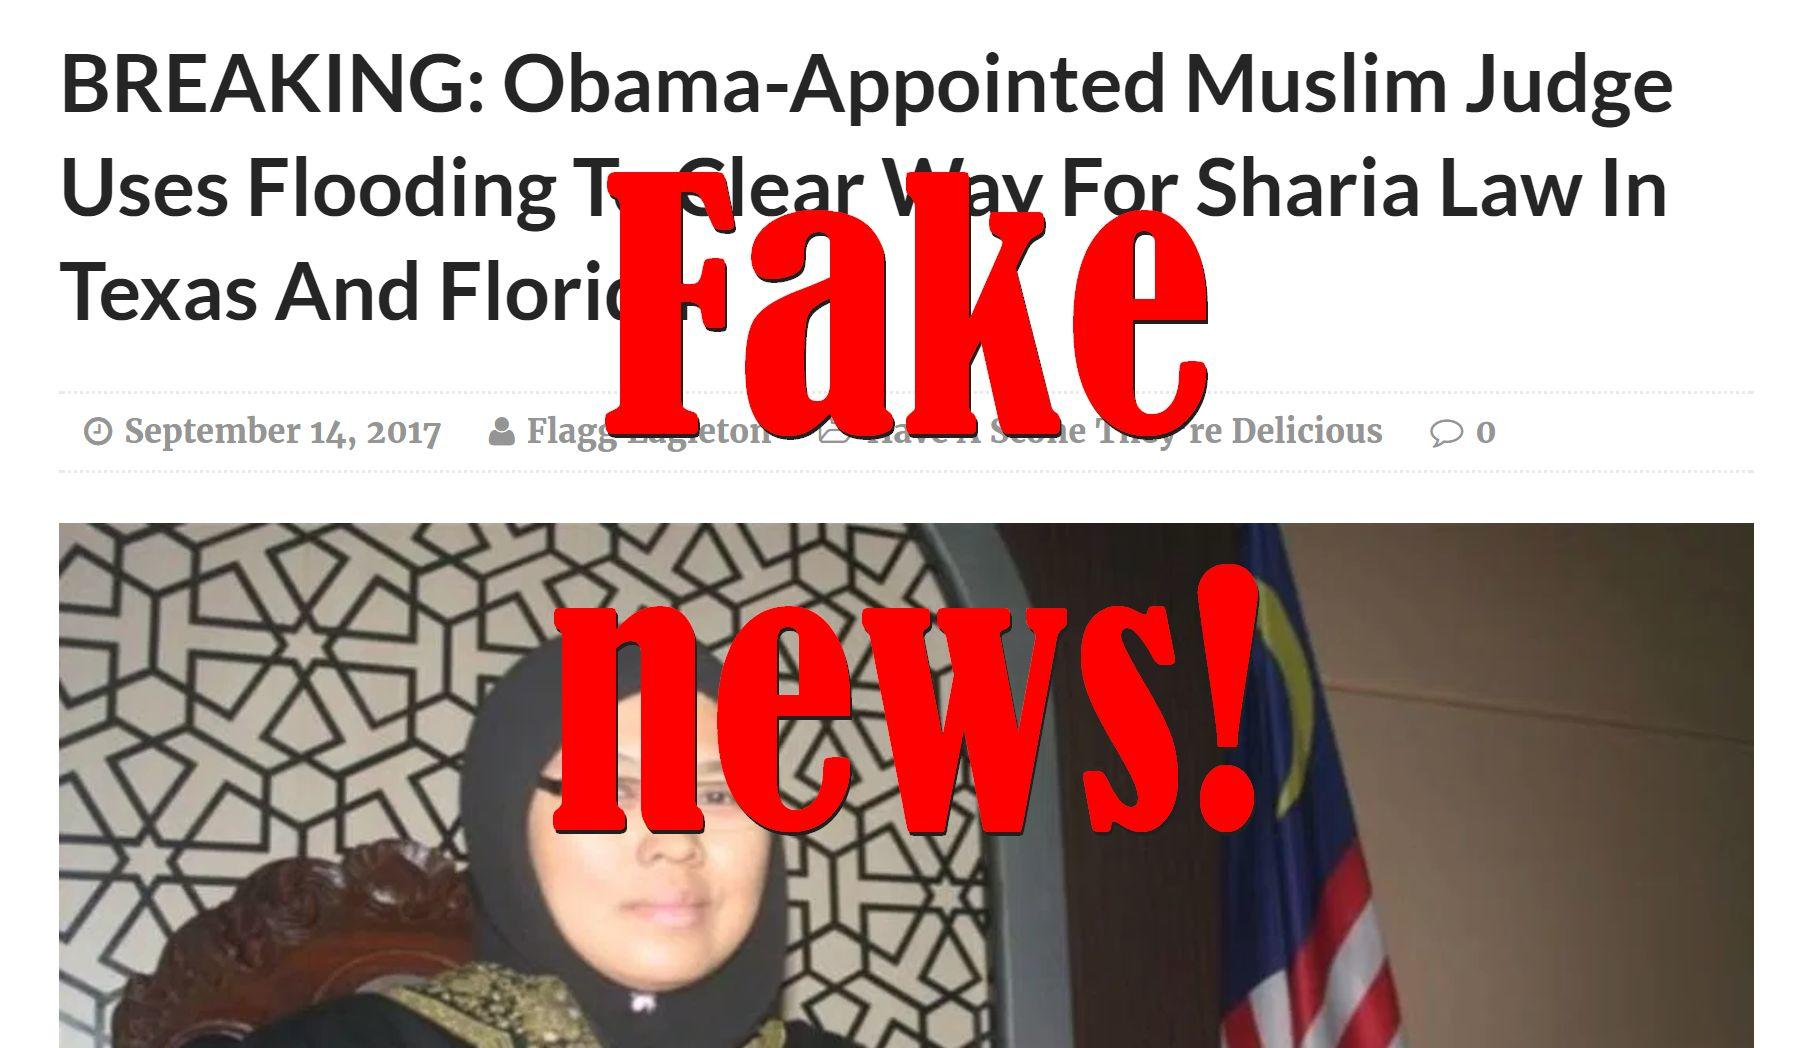 Fake News: Obama-Appointed Muslim Judge Did NOT Use Flooding To Clear Way For Sharia Law In Texas And Florida